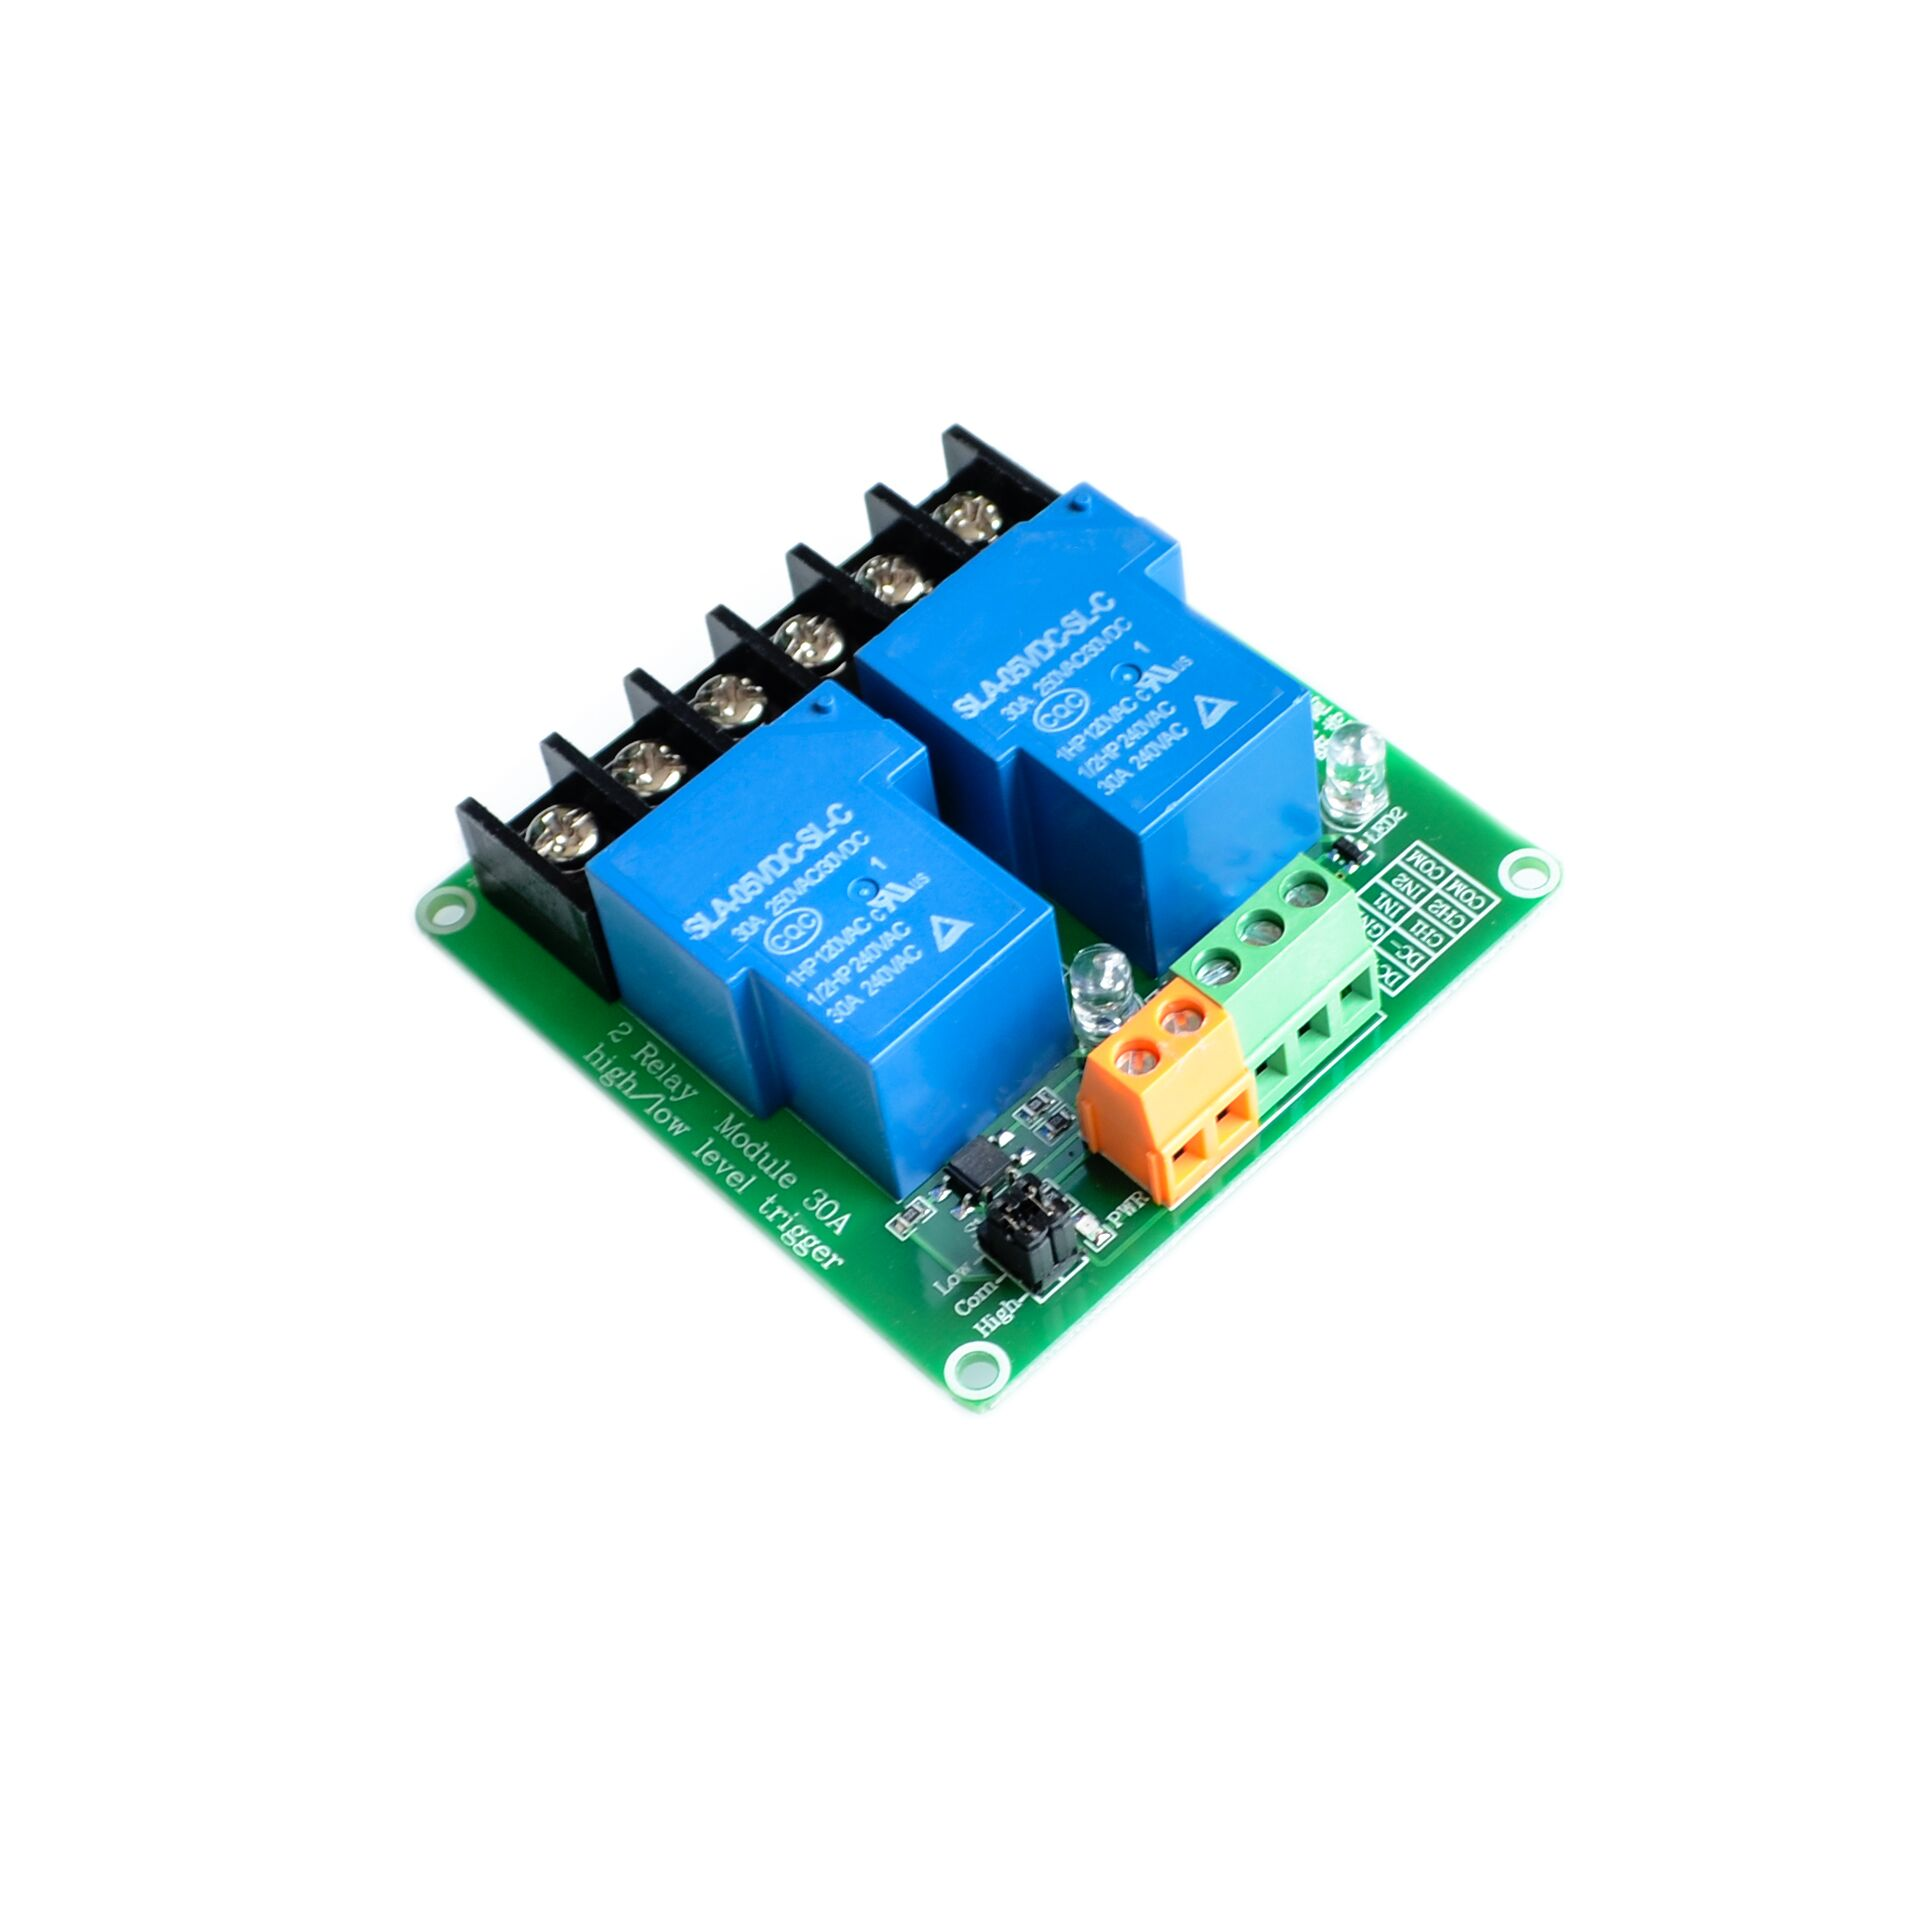 Optocoupler Circuits 2 10 From 61 Votes Optocoupler Circuits 2 10 From